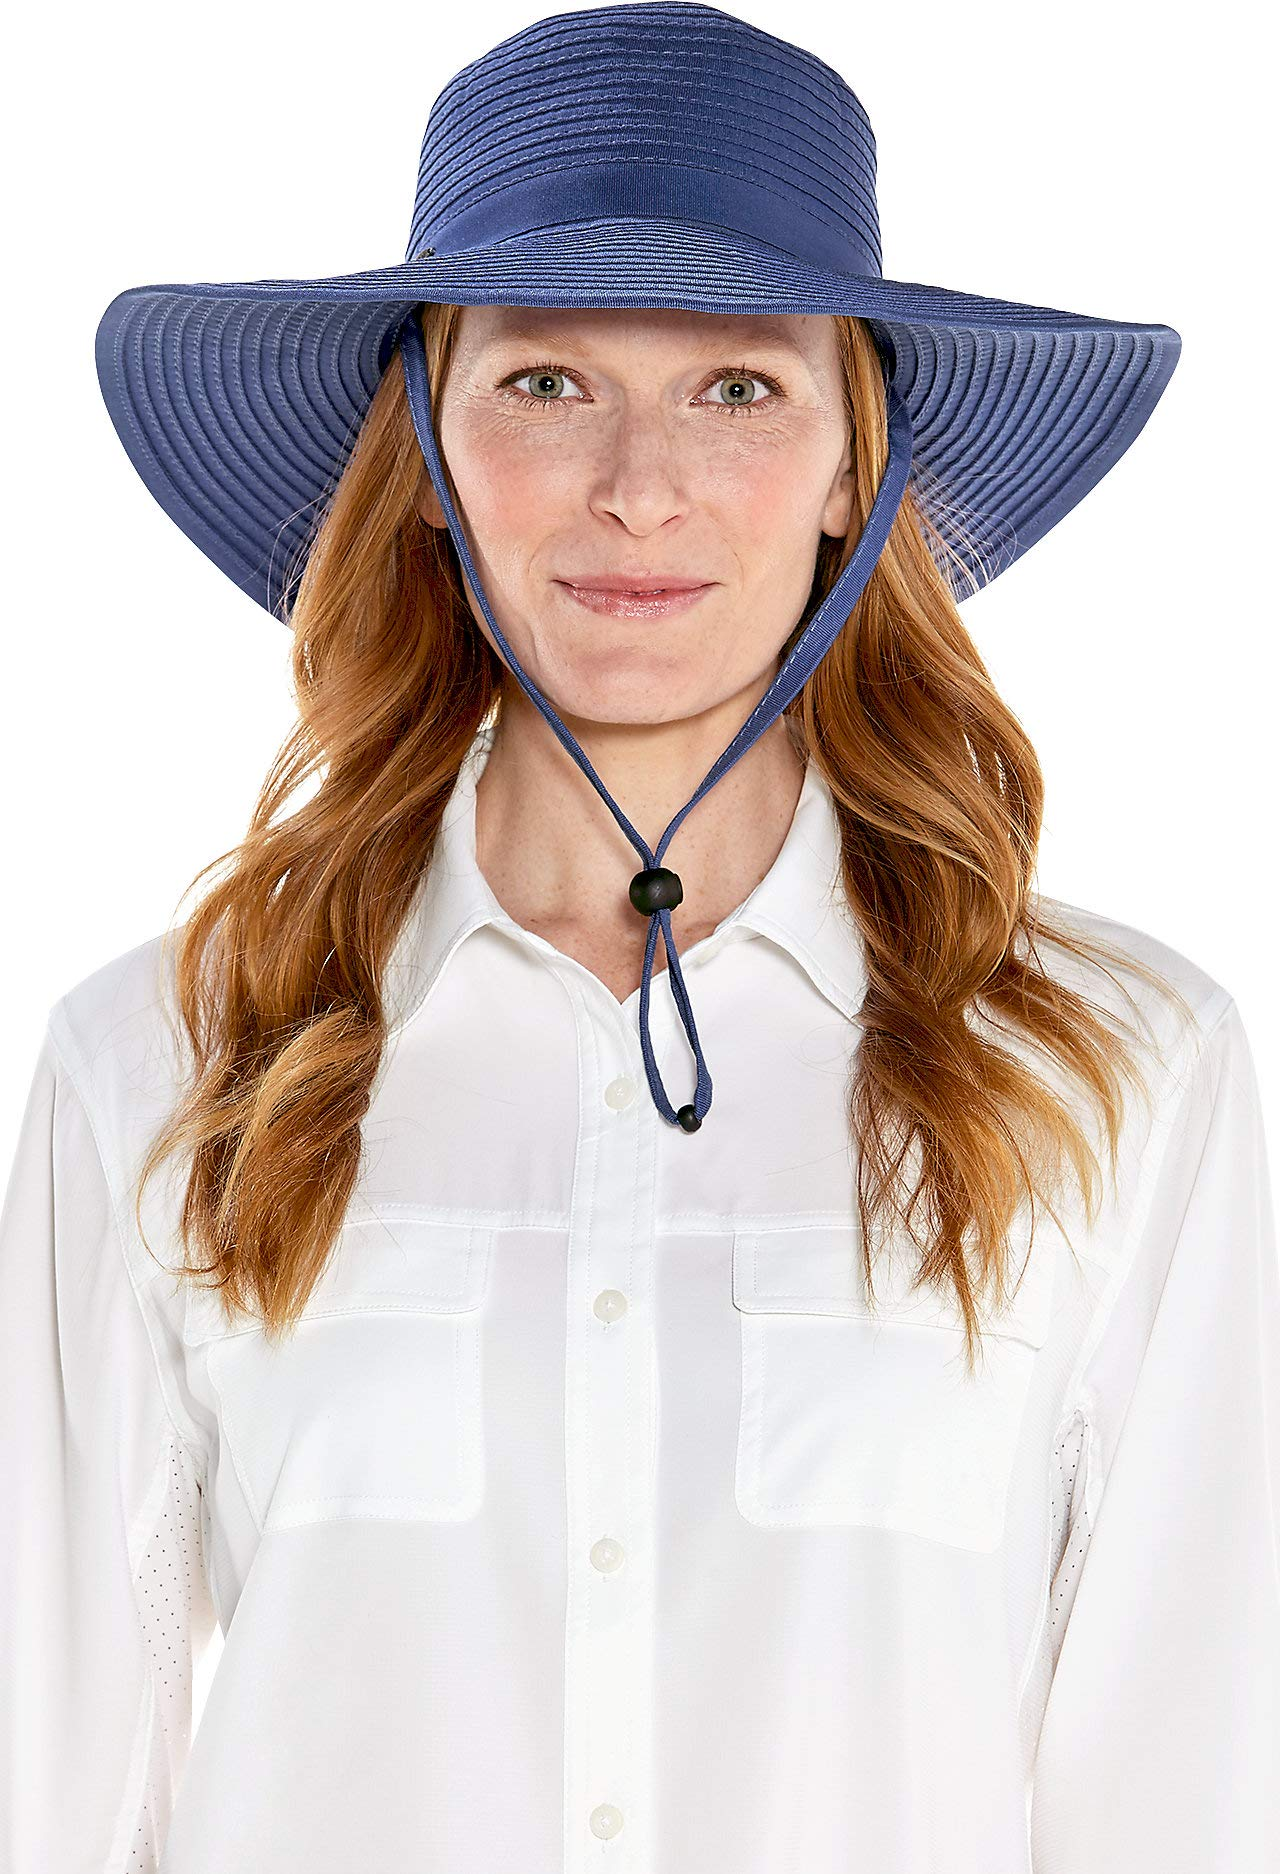 Coolibar UPF 50+ Women's Shapeable Travel Sun Hat - Sun Protective (One Size- Empire Blue)